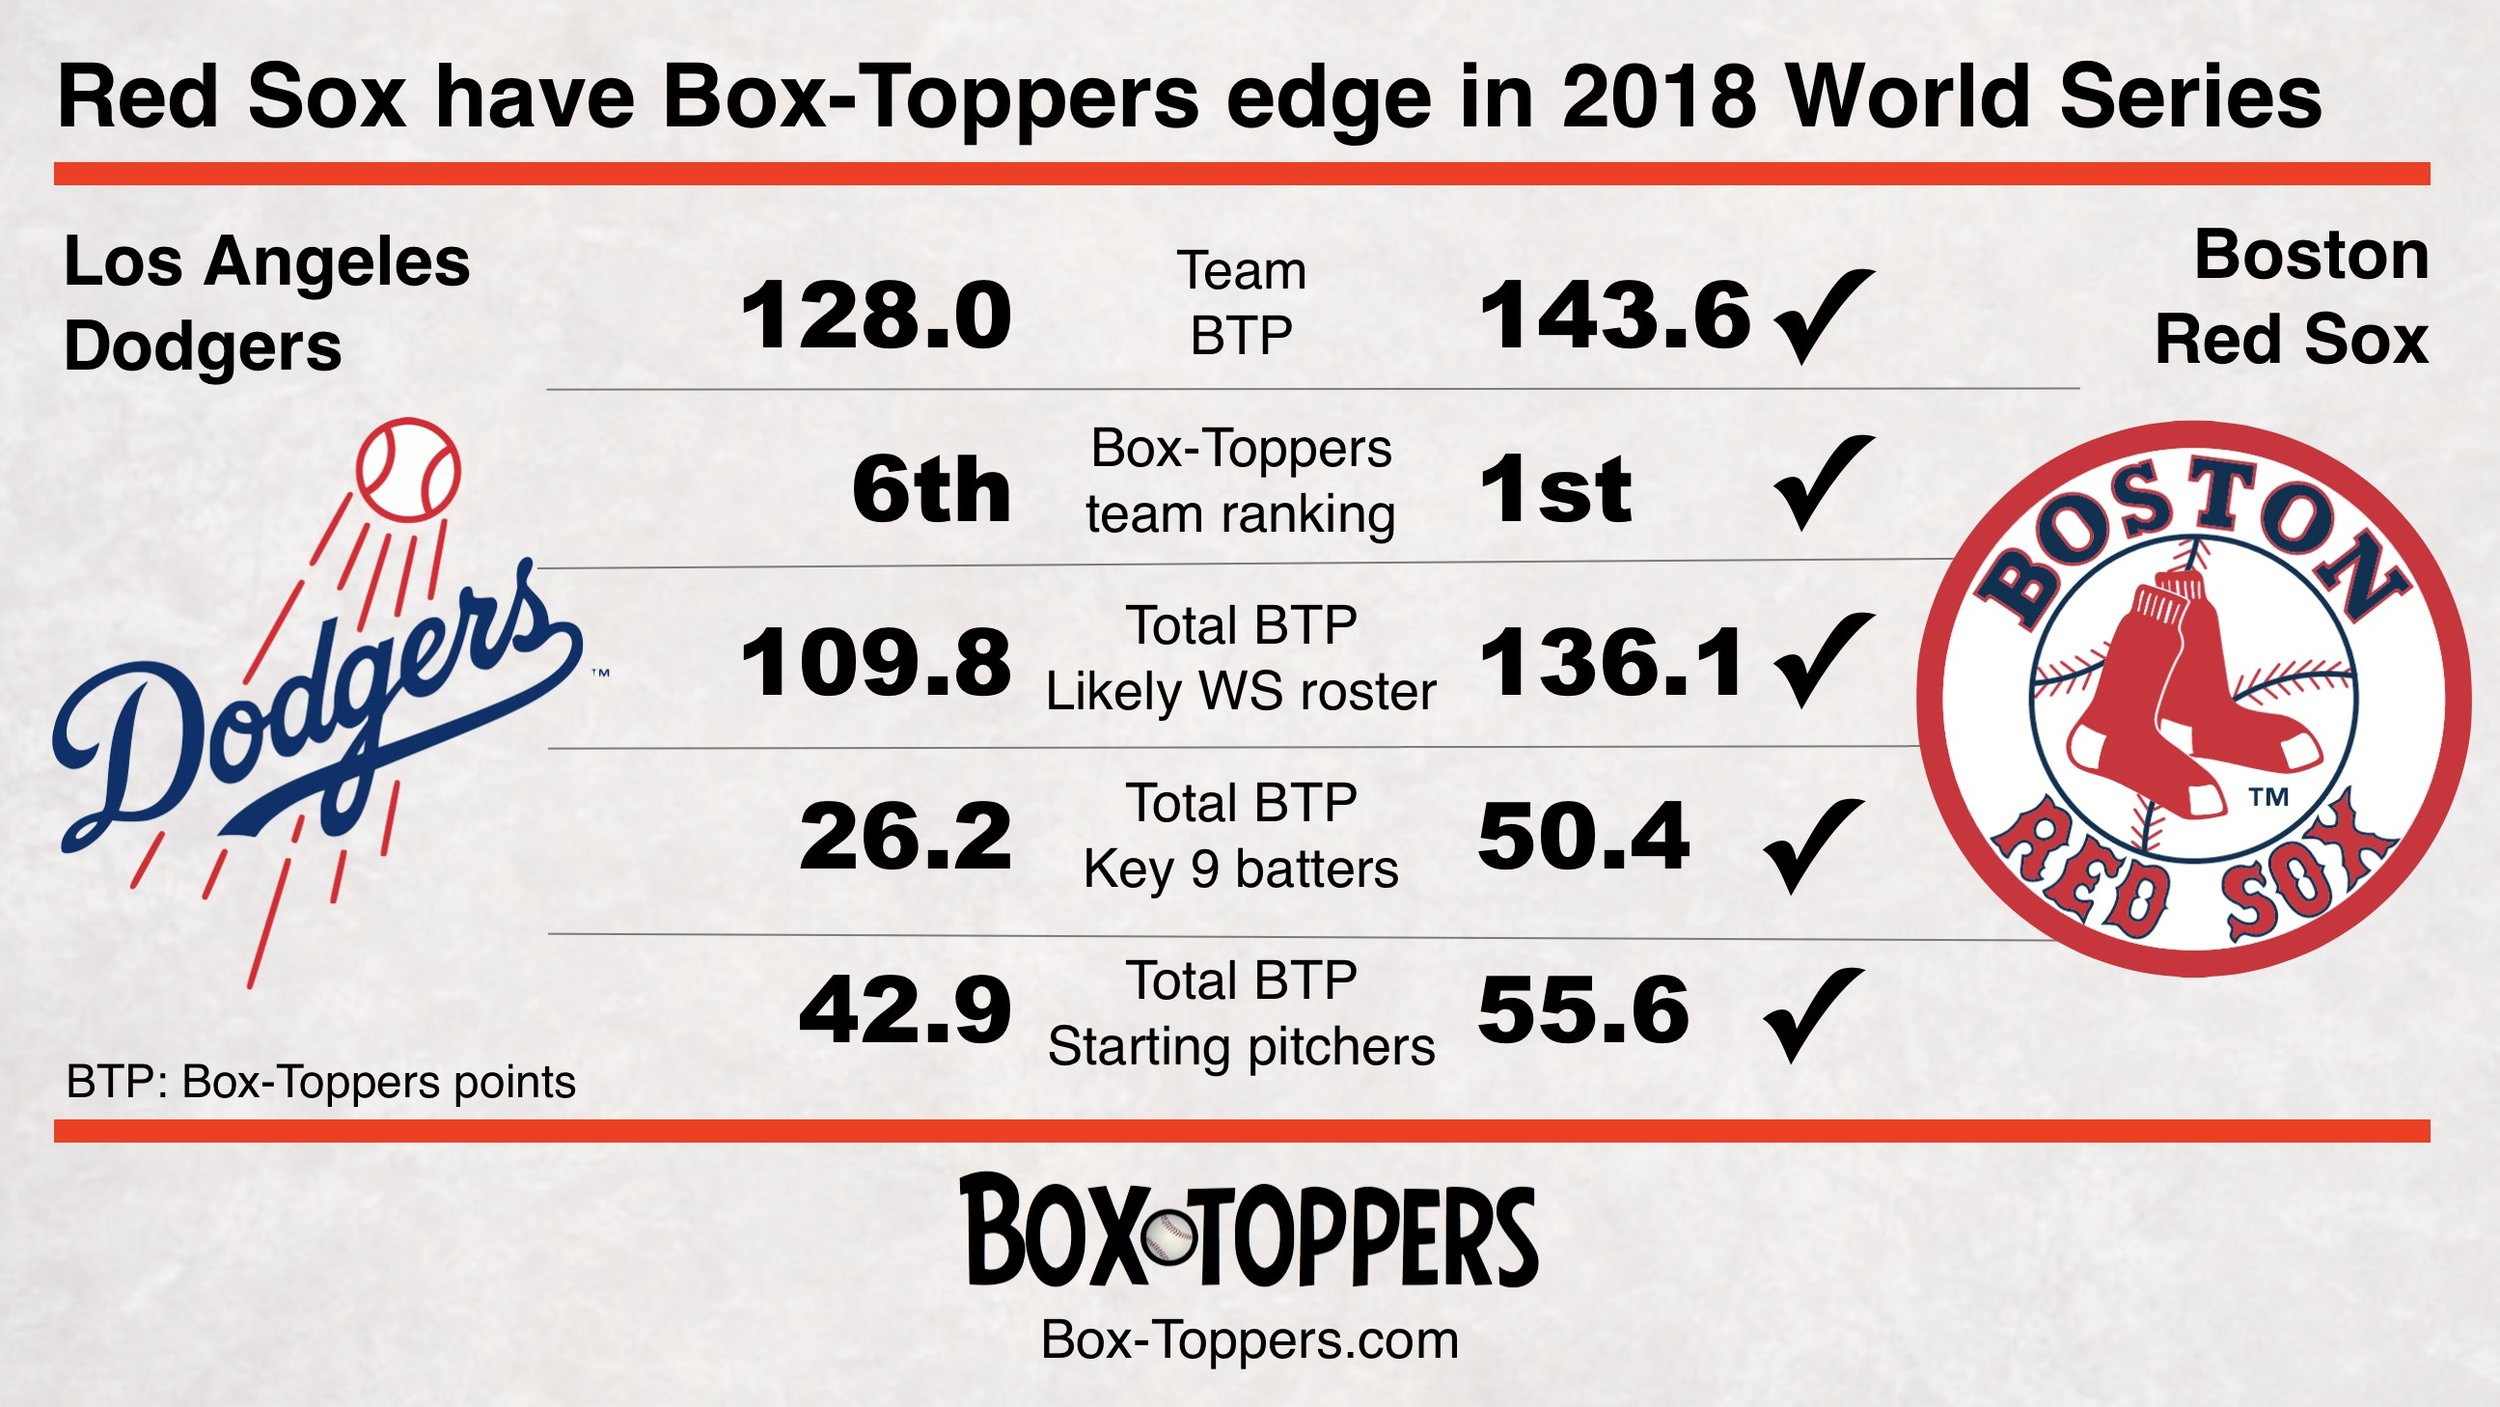 red sox have edge in 2018 world series.jpg